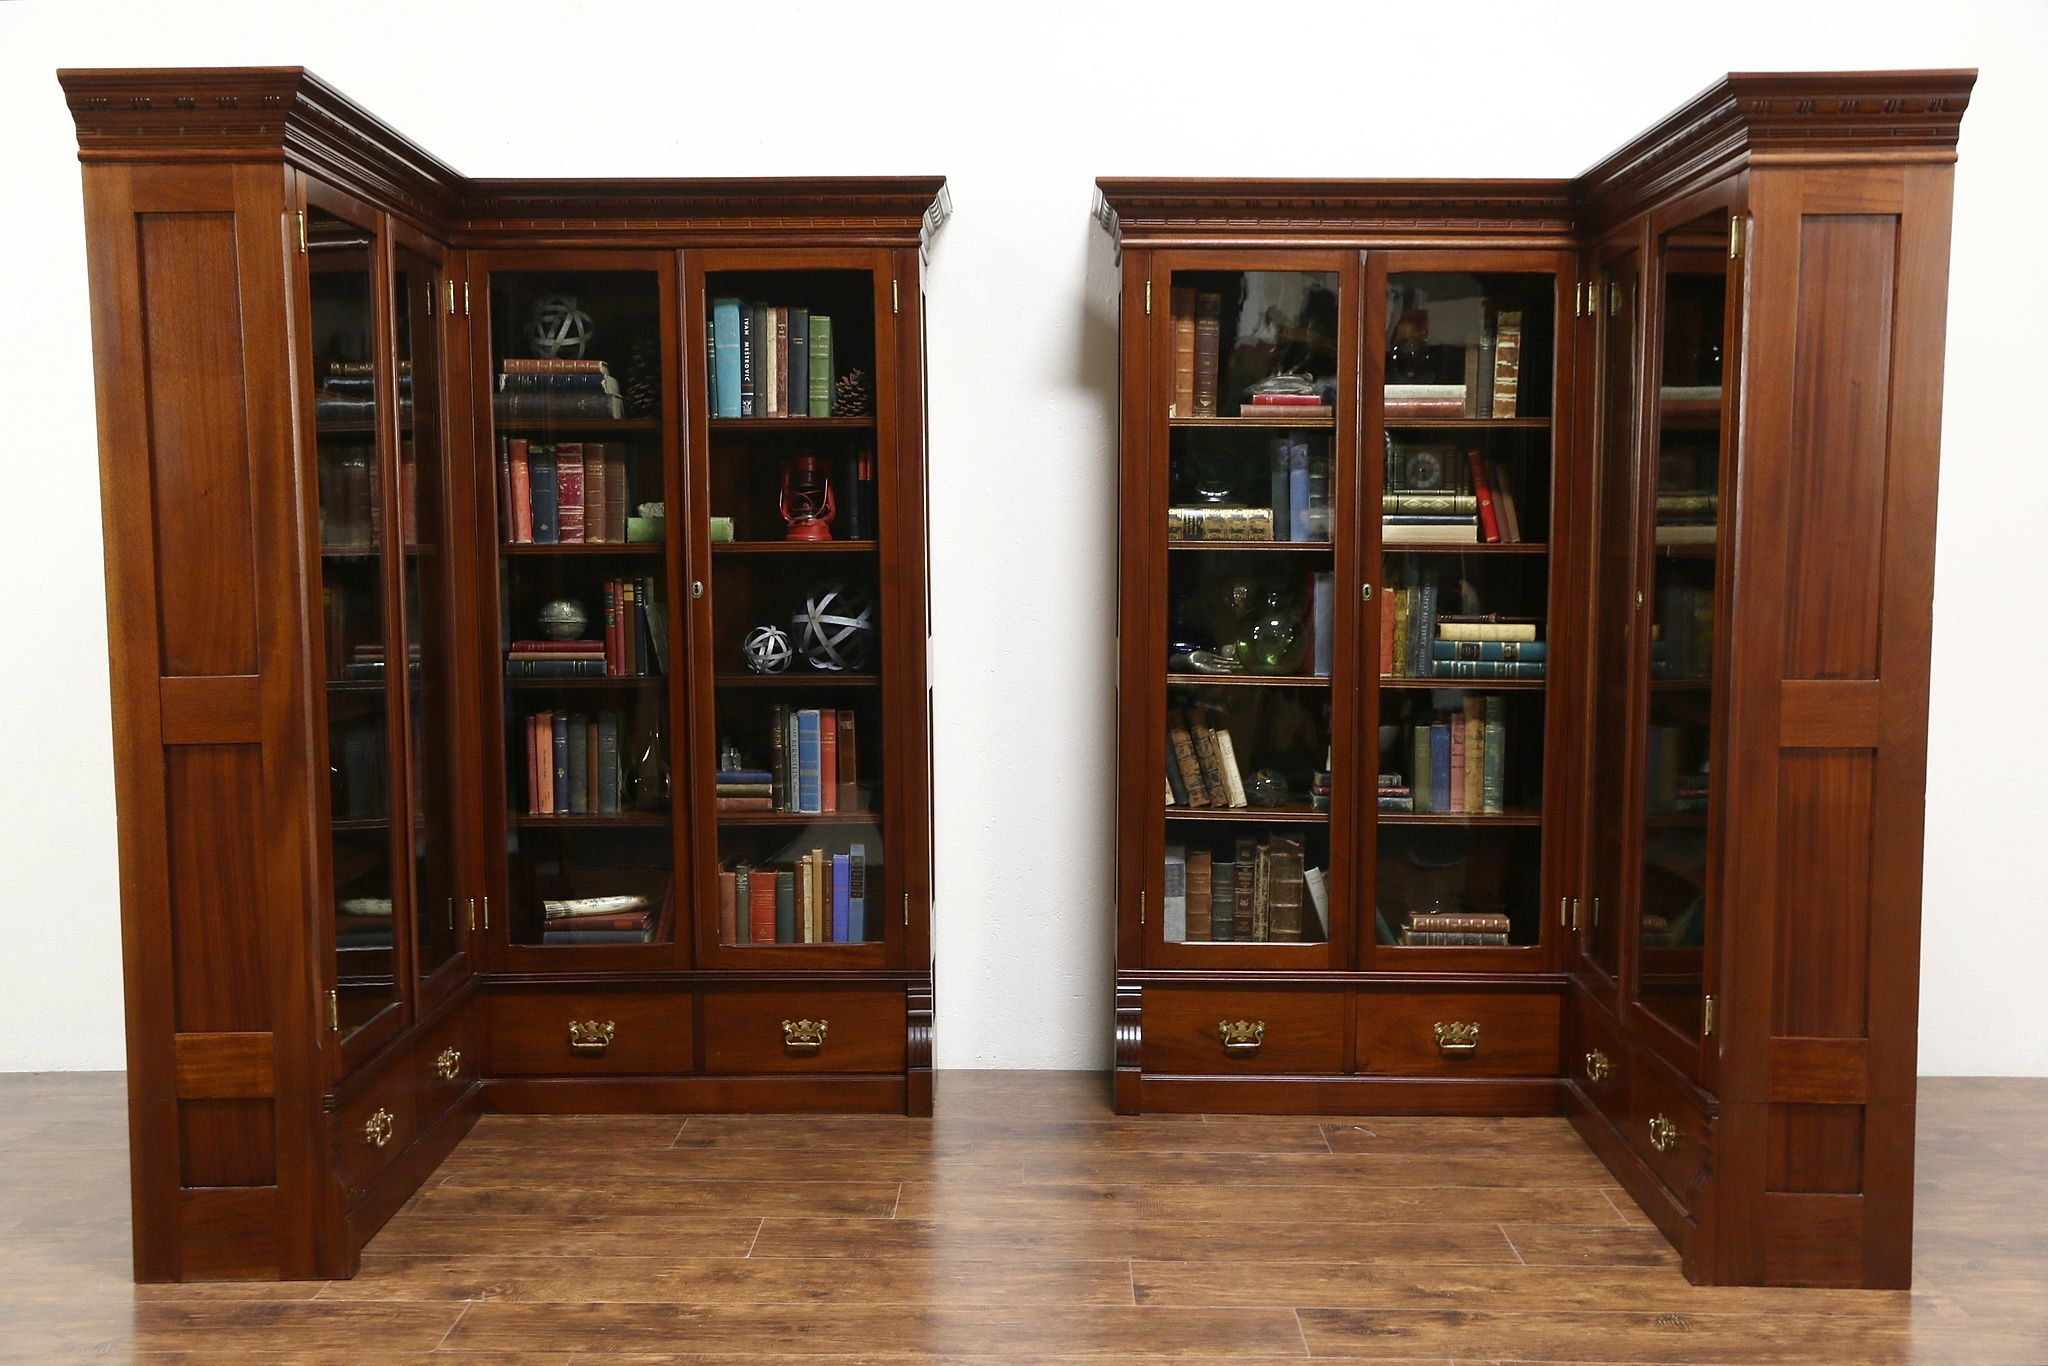 Antique library bookcases Build In Sold Pair 1890 Antique Mahogany Library Corner Bookcases Glass Doors Disassemble Harp Gallery Harp Gallery Antique Furniture Sold Pair 1890 Antique Mahogany Library Corner Bookcases Glass